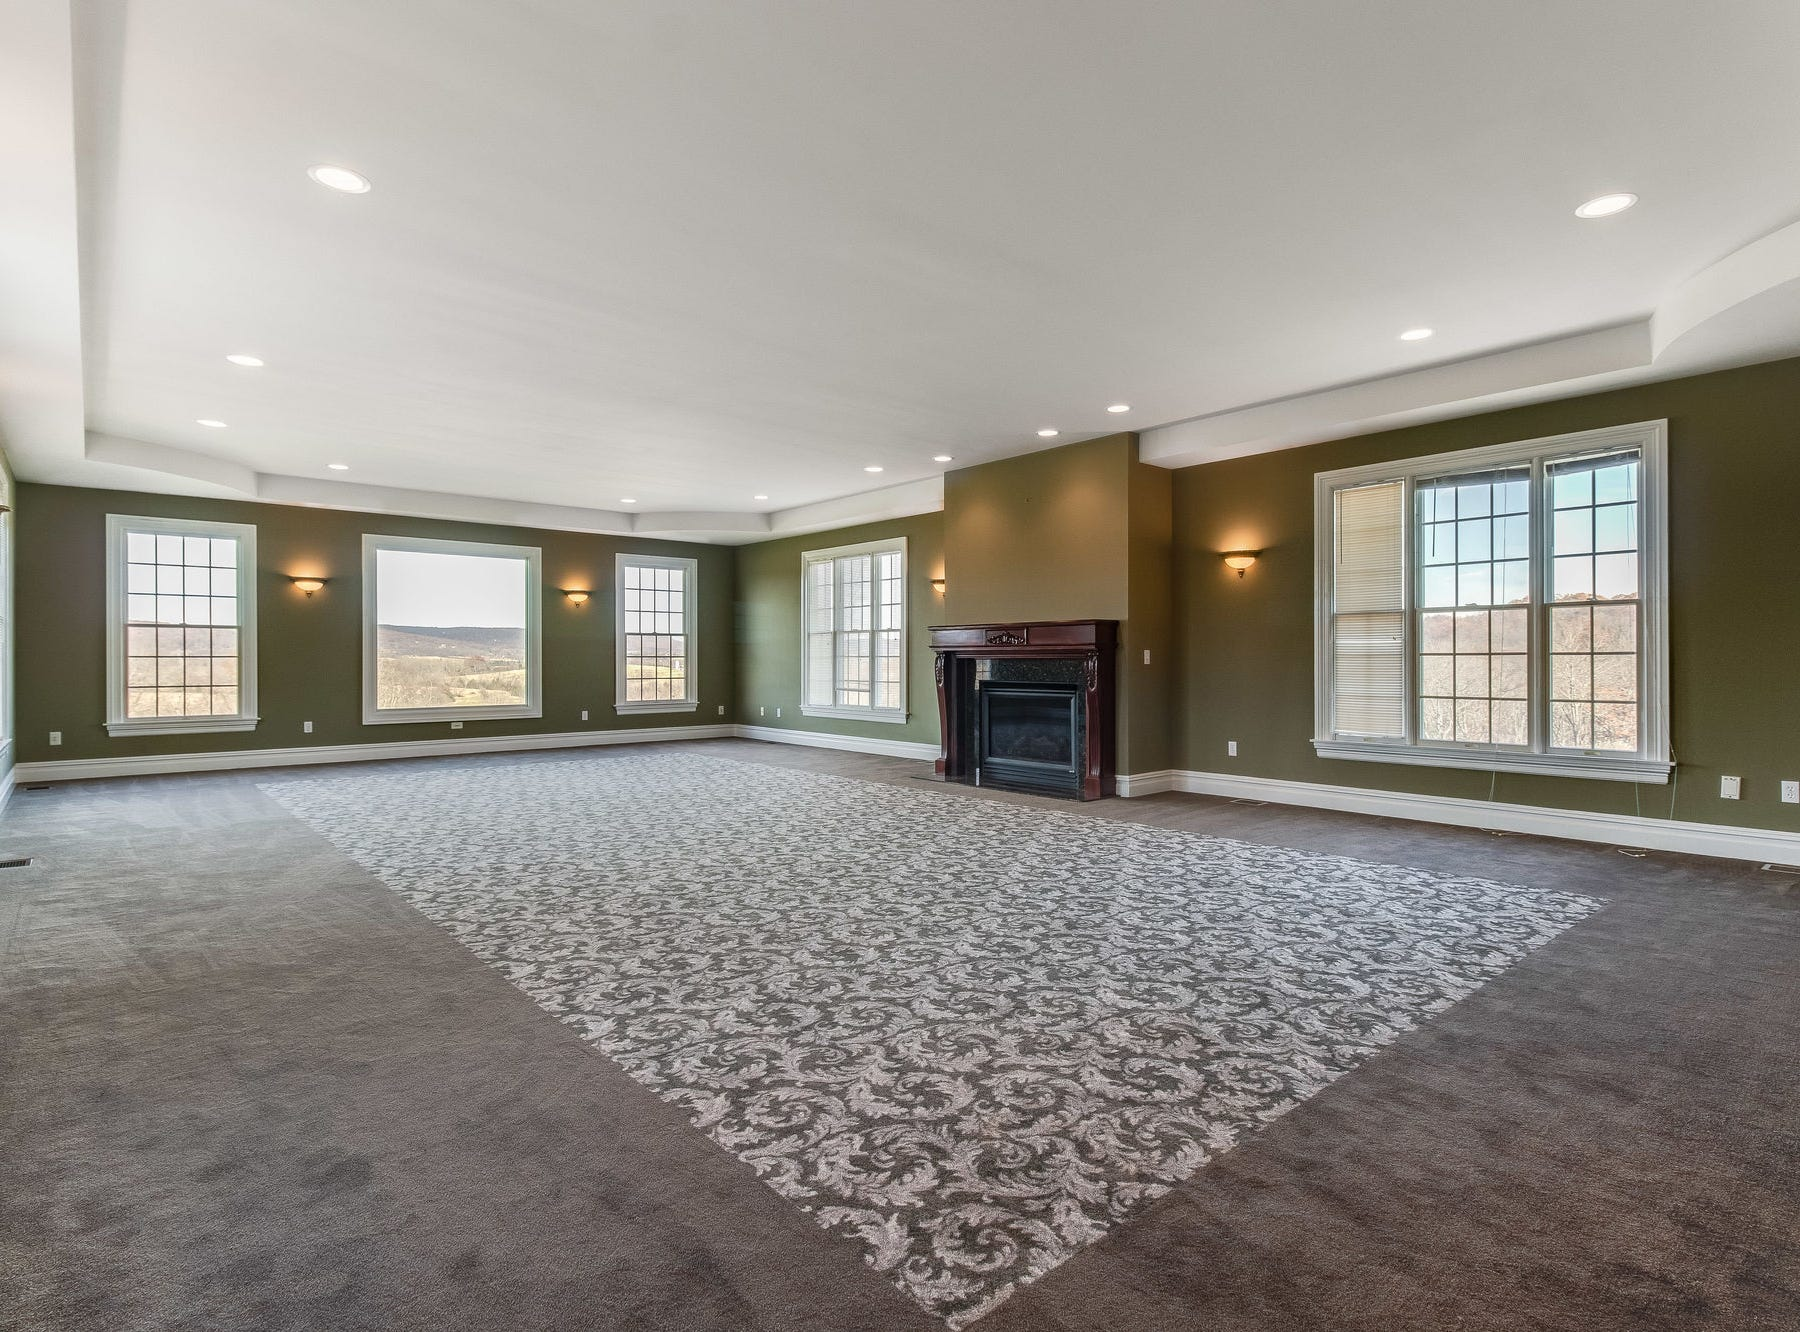 The Media Room has recessed lights in a tray ceiling, wall sconces, divided-light and picture windows on three sides and a fireplace.